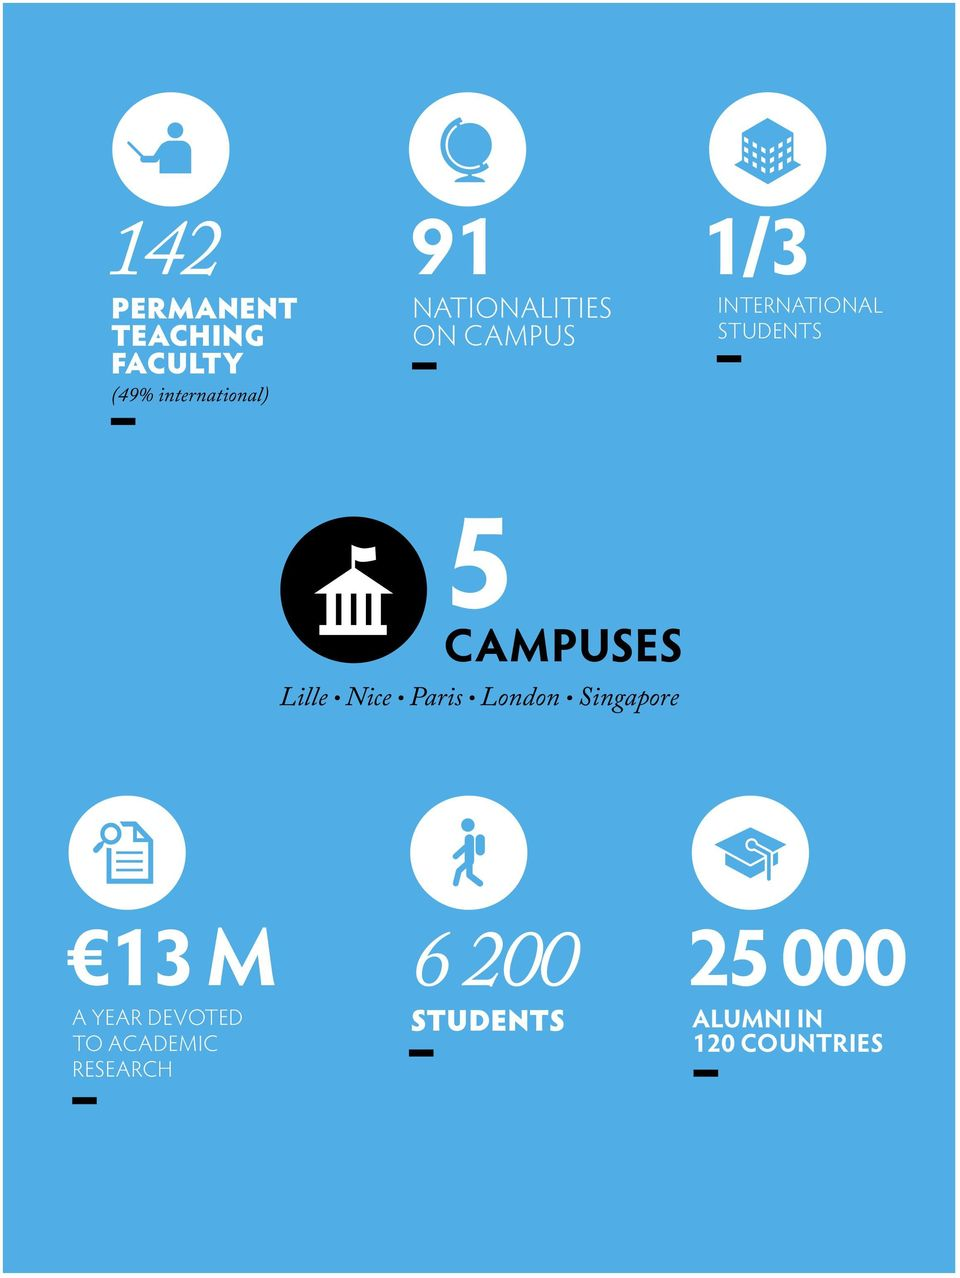 campuses Lille Nice Paris London Singapore 13 M A year